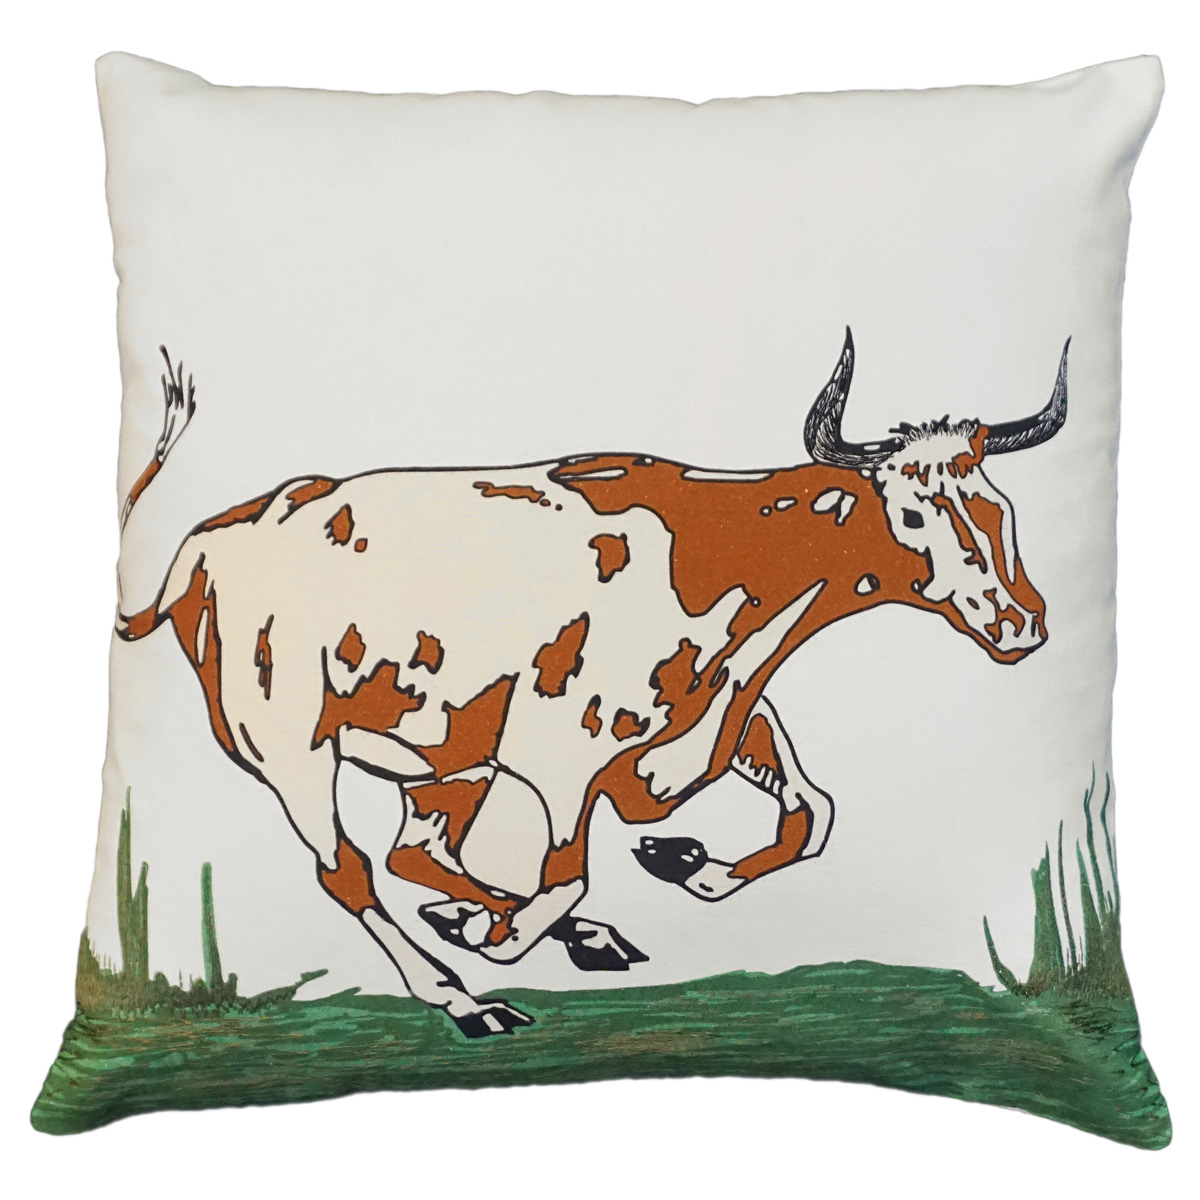 Longhorn Cow Embroidered Pillow